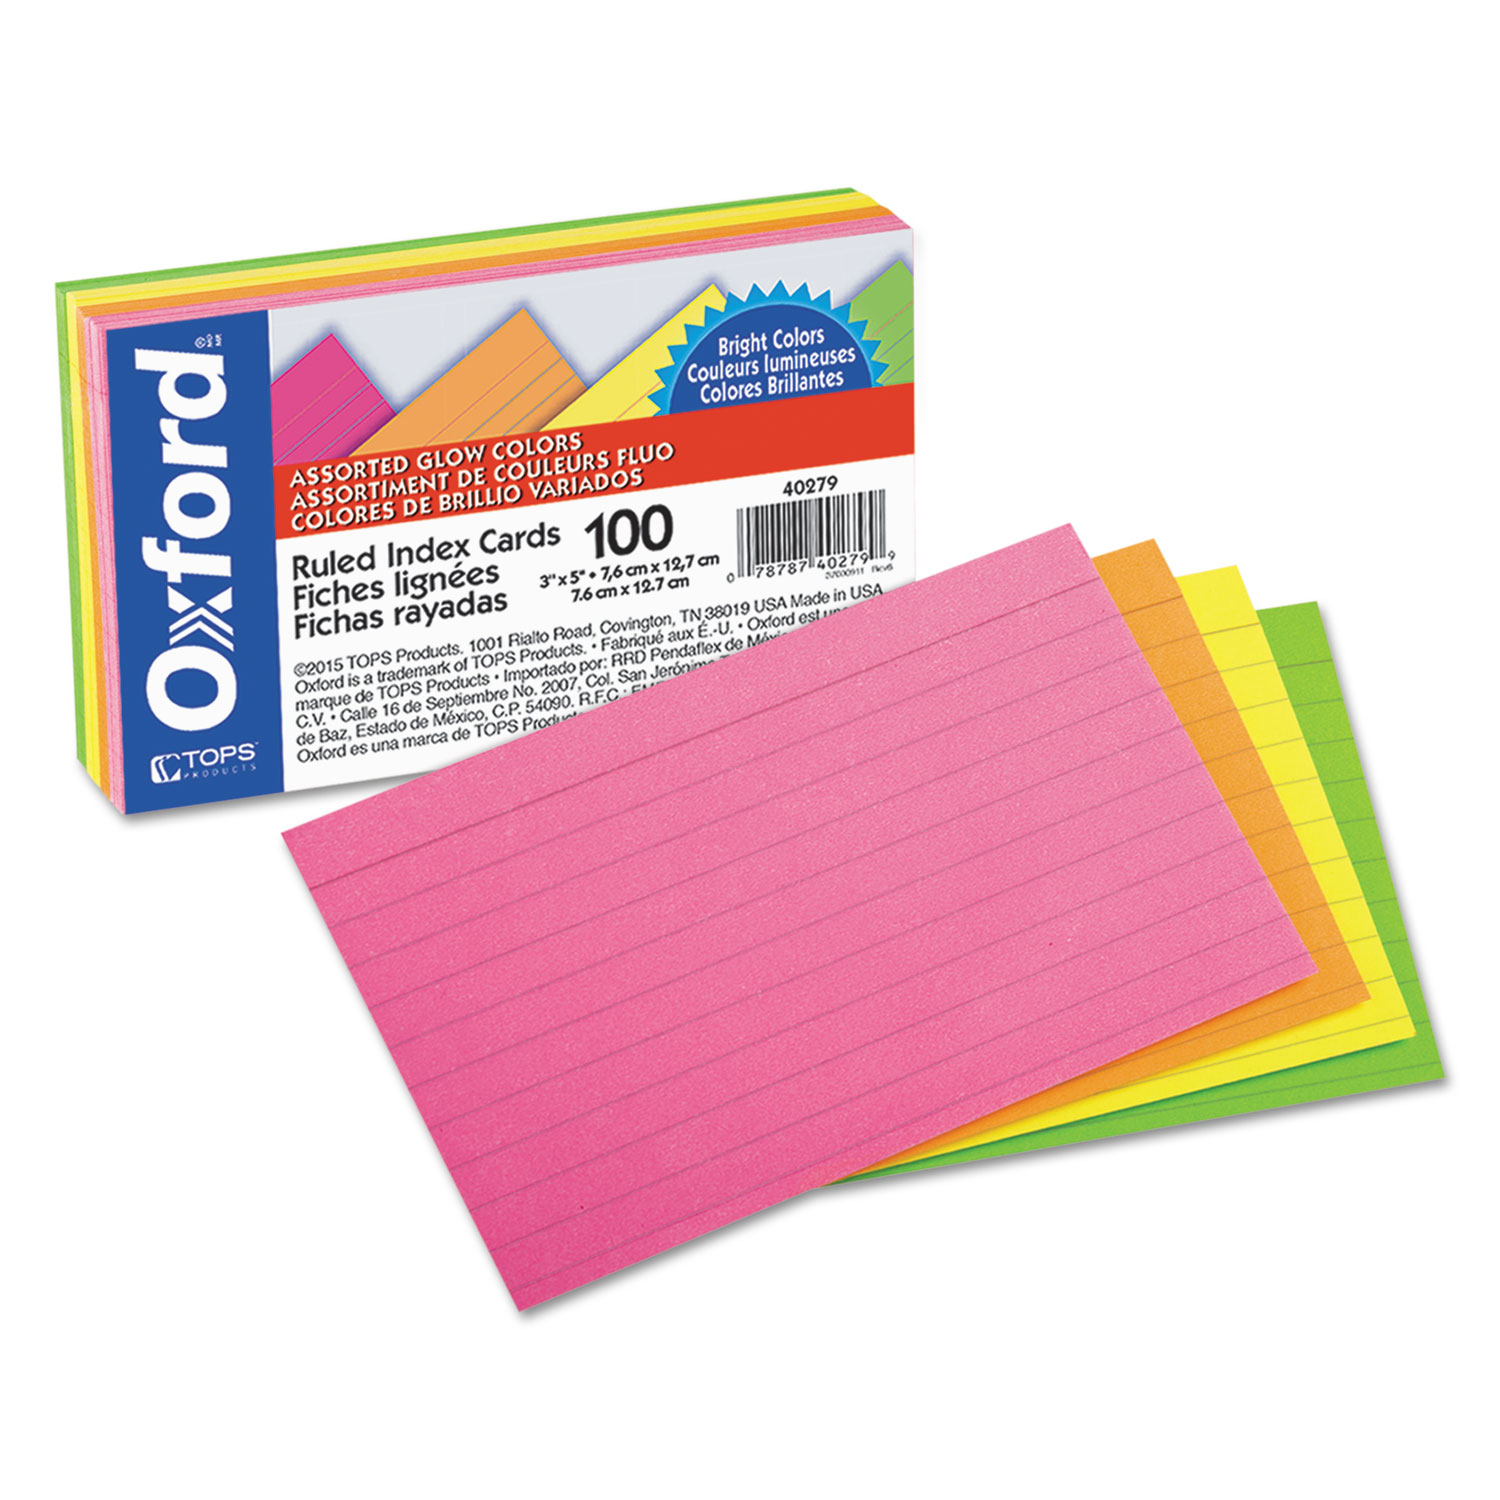 avery flash cards template - ruled index cards by oxford oxf40279